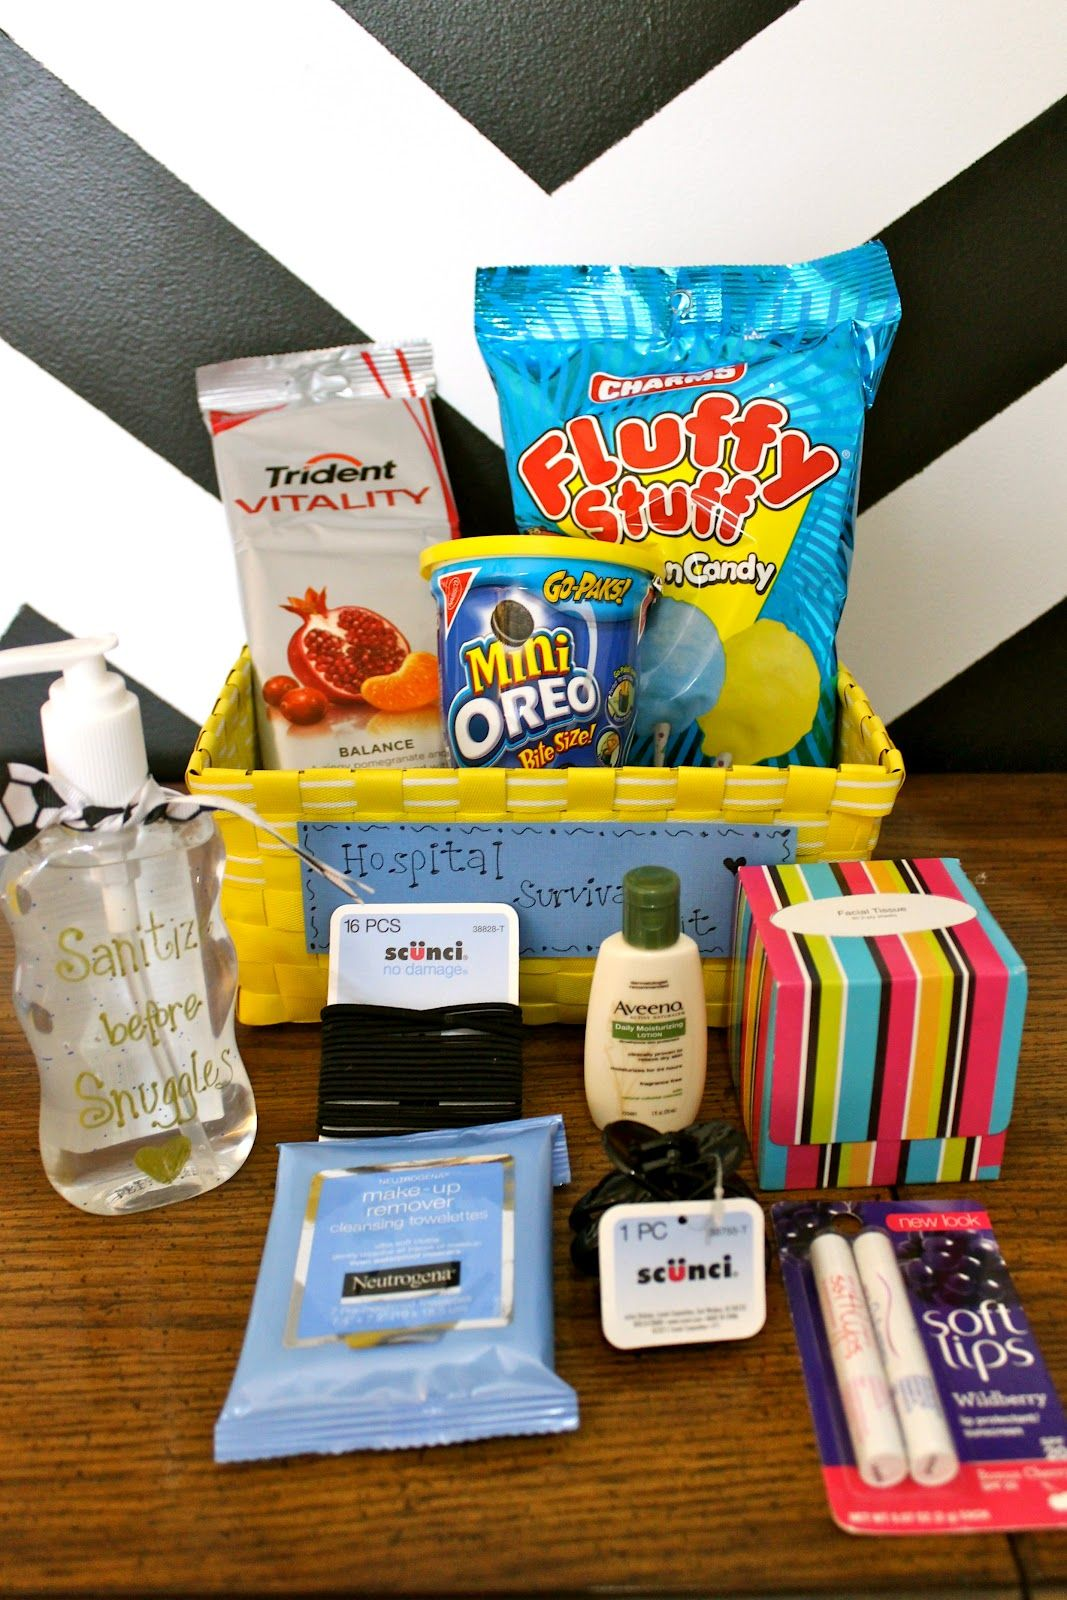 Diy Mothers Day Gifts From Baby Hospital Survival Kit For When Baby Comes So Cute For A